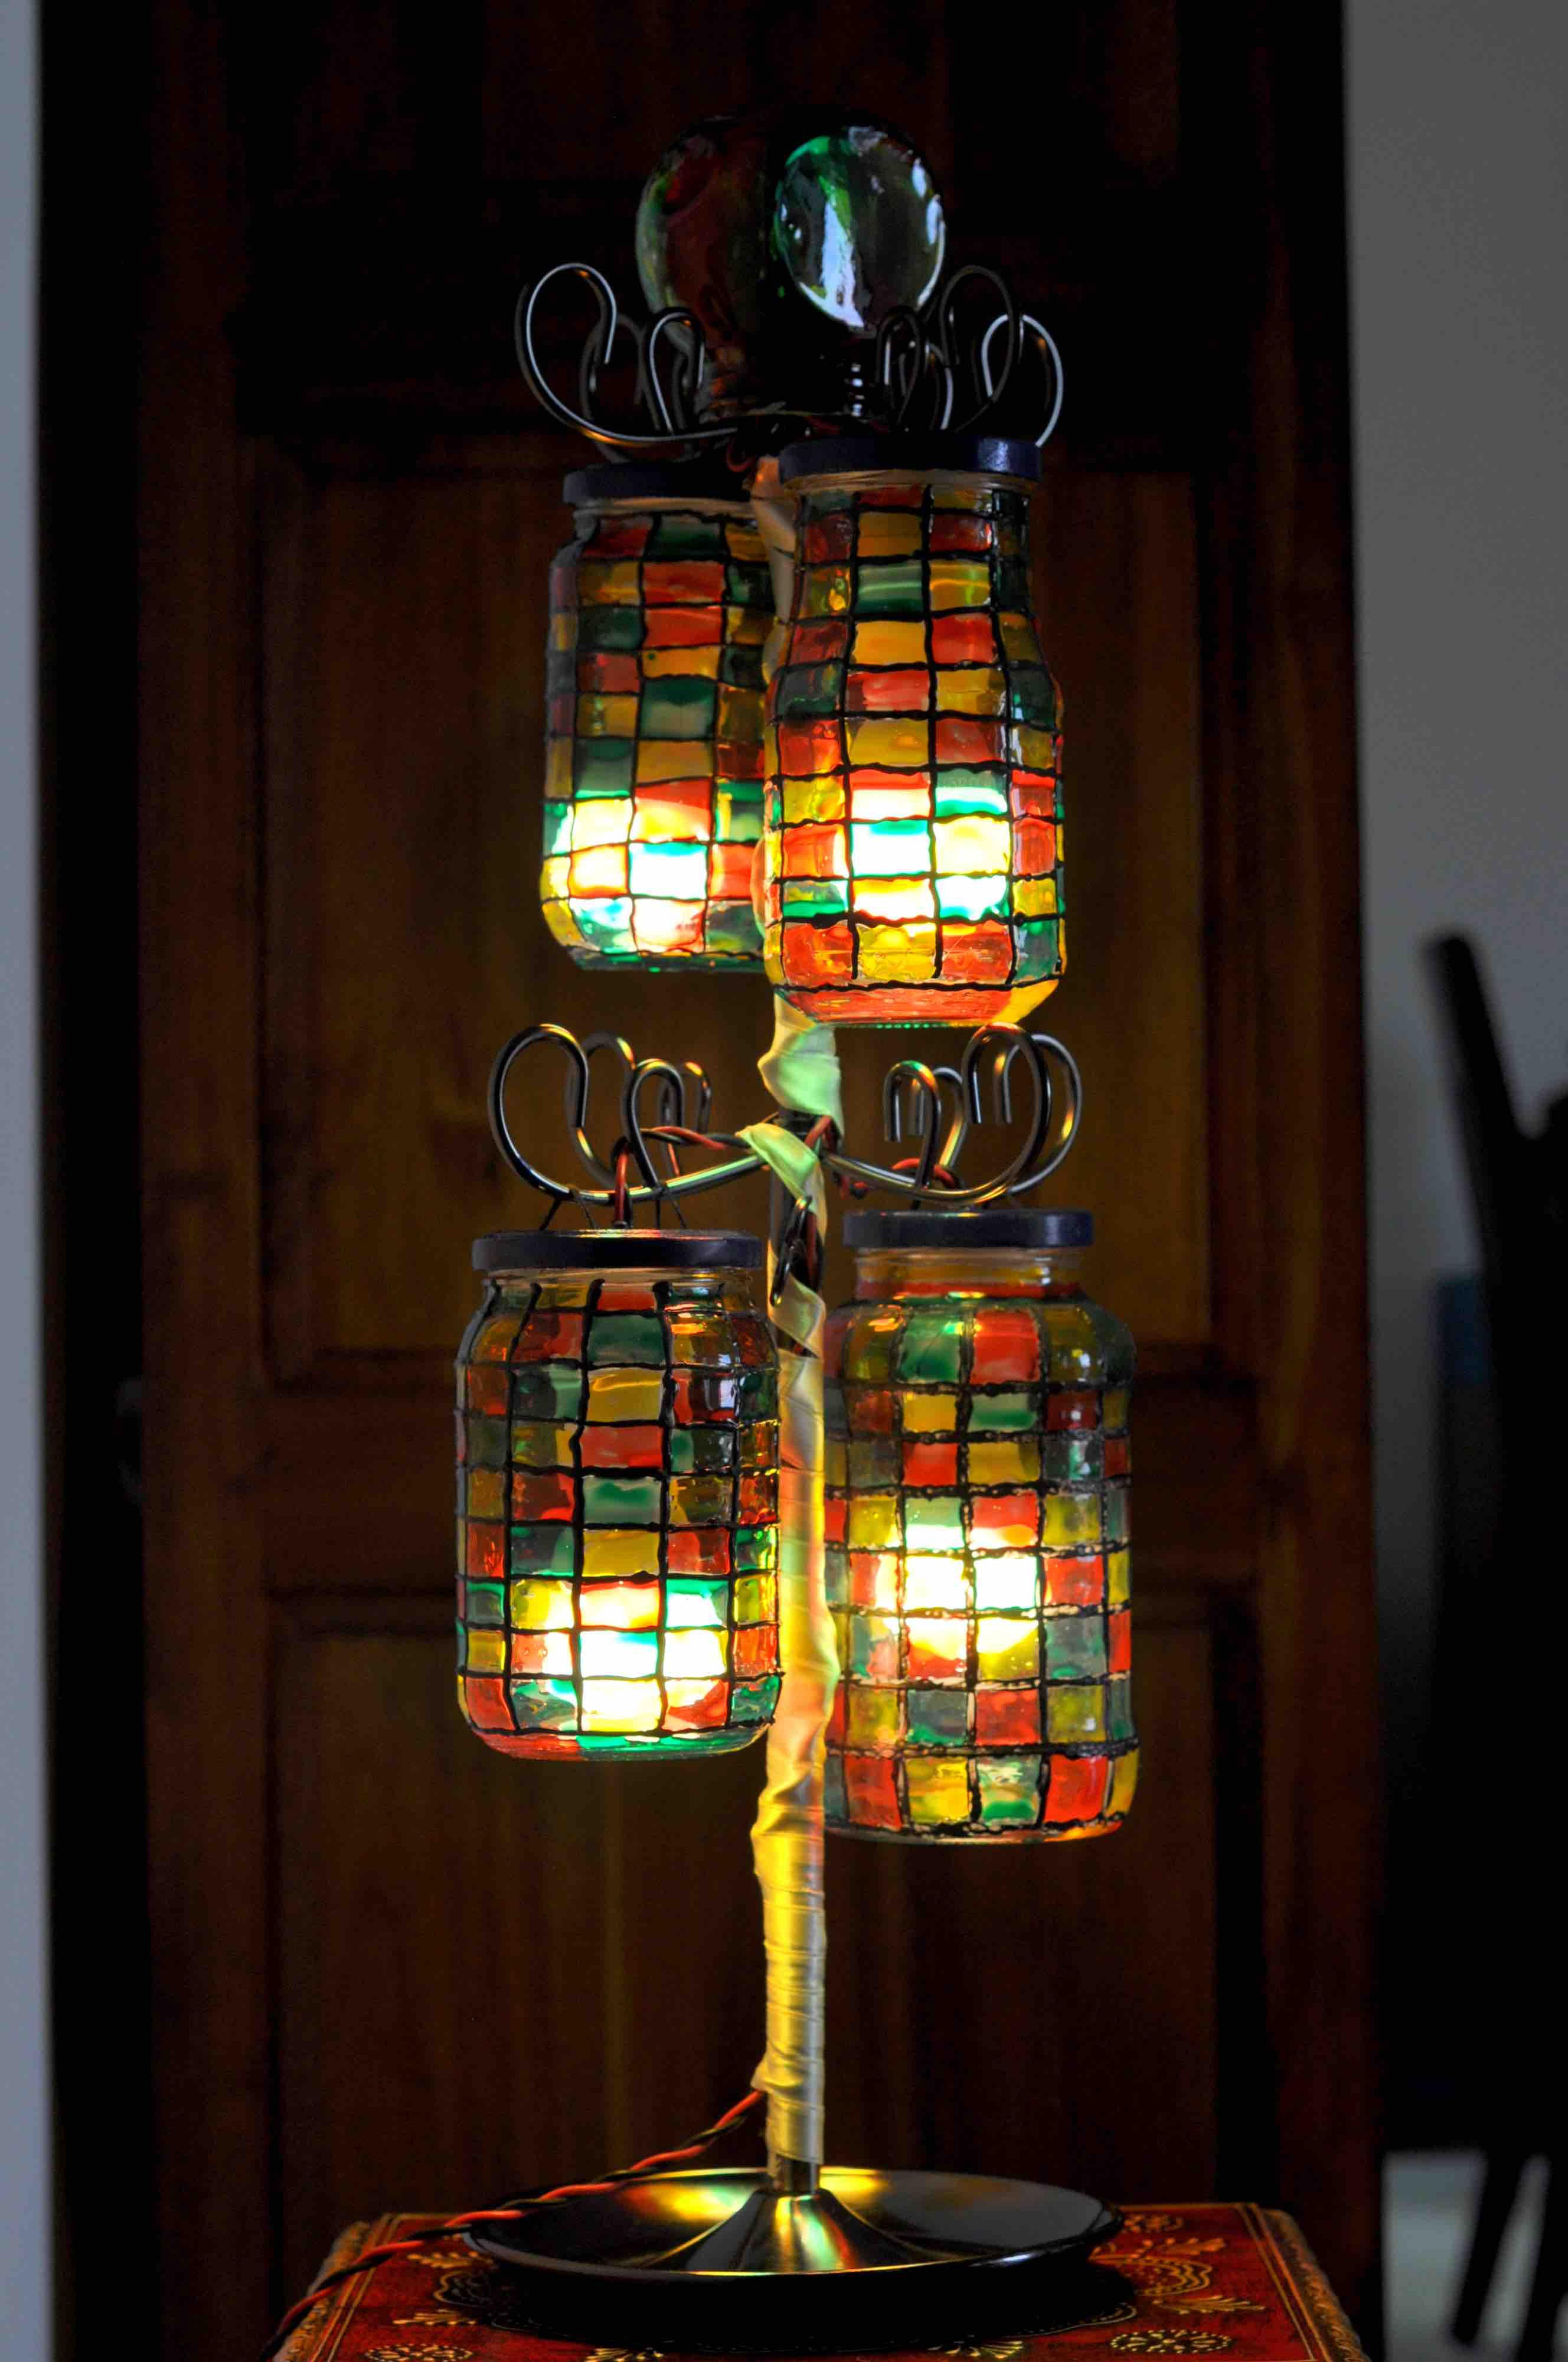 Upcycle old glass jars into a lamp! Once you are done with the pastas / pickles / etc, upcycle the container into a beautiful decor centerpiece with this DIY